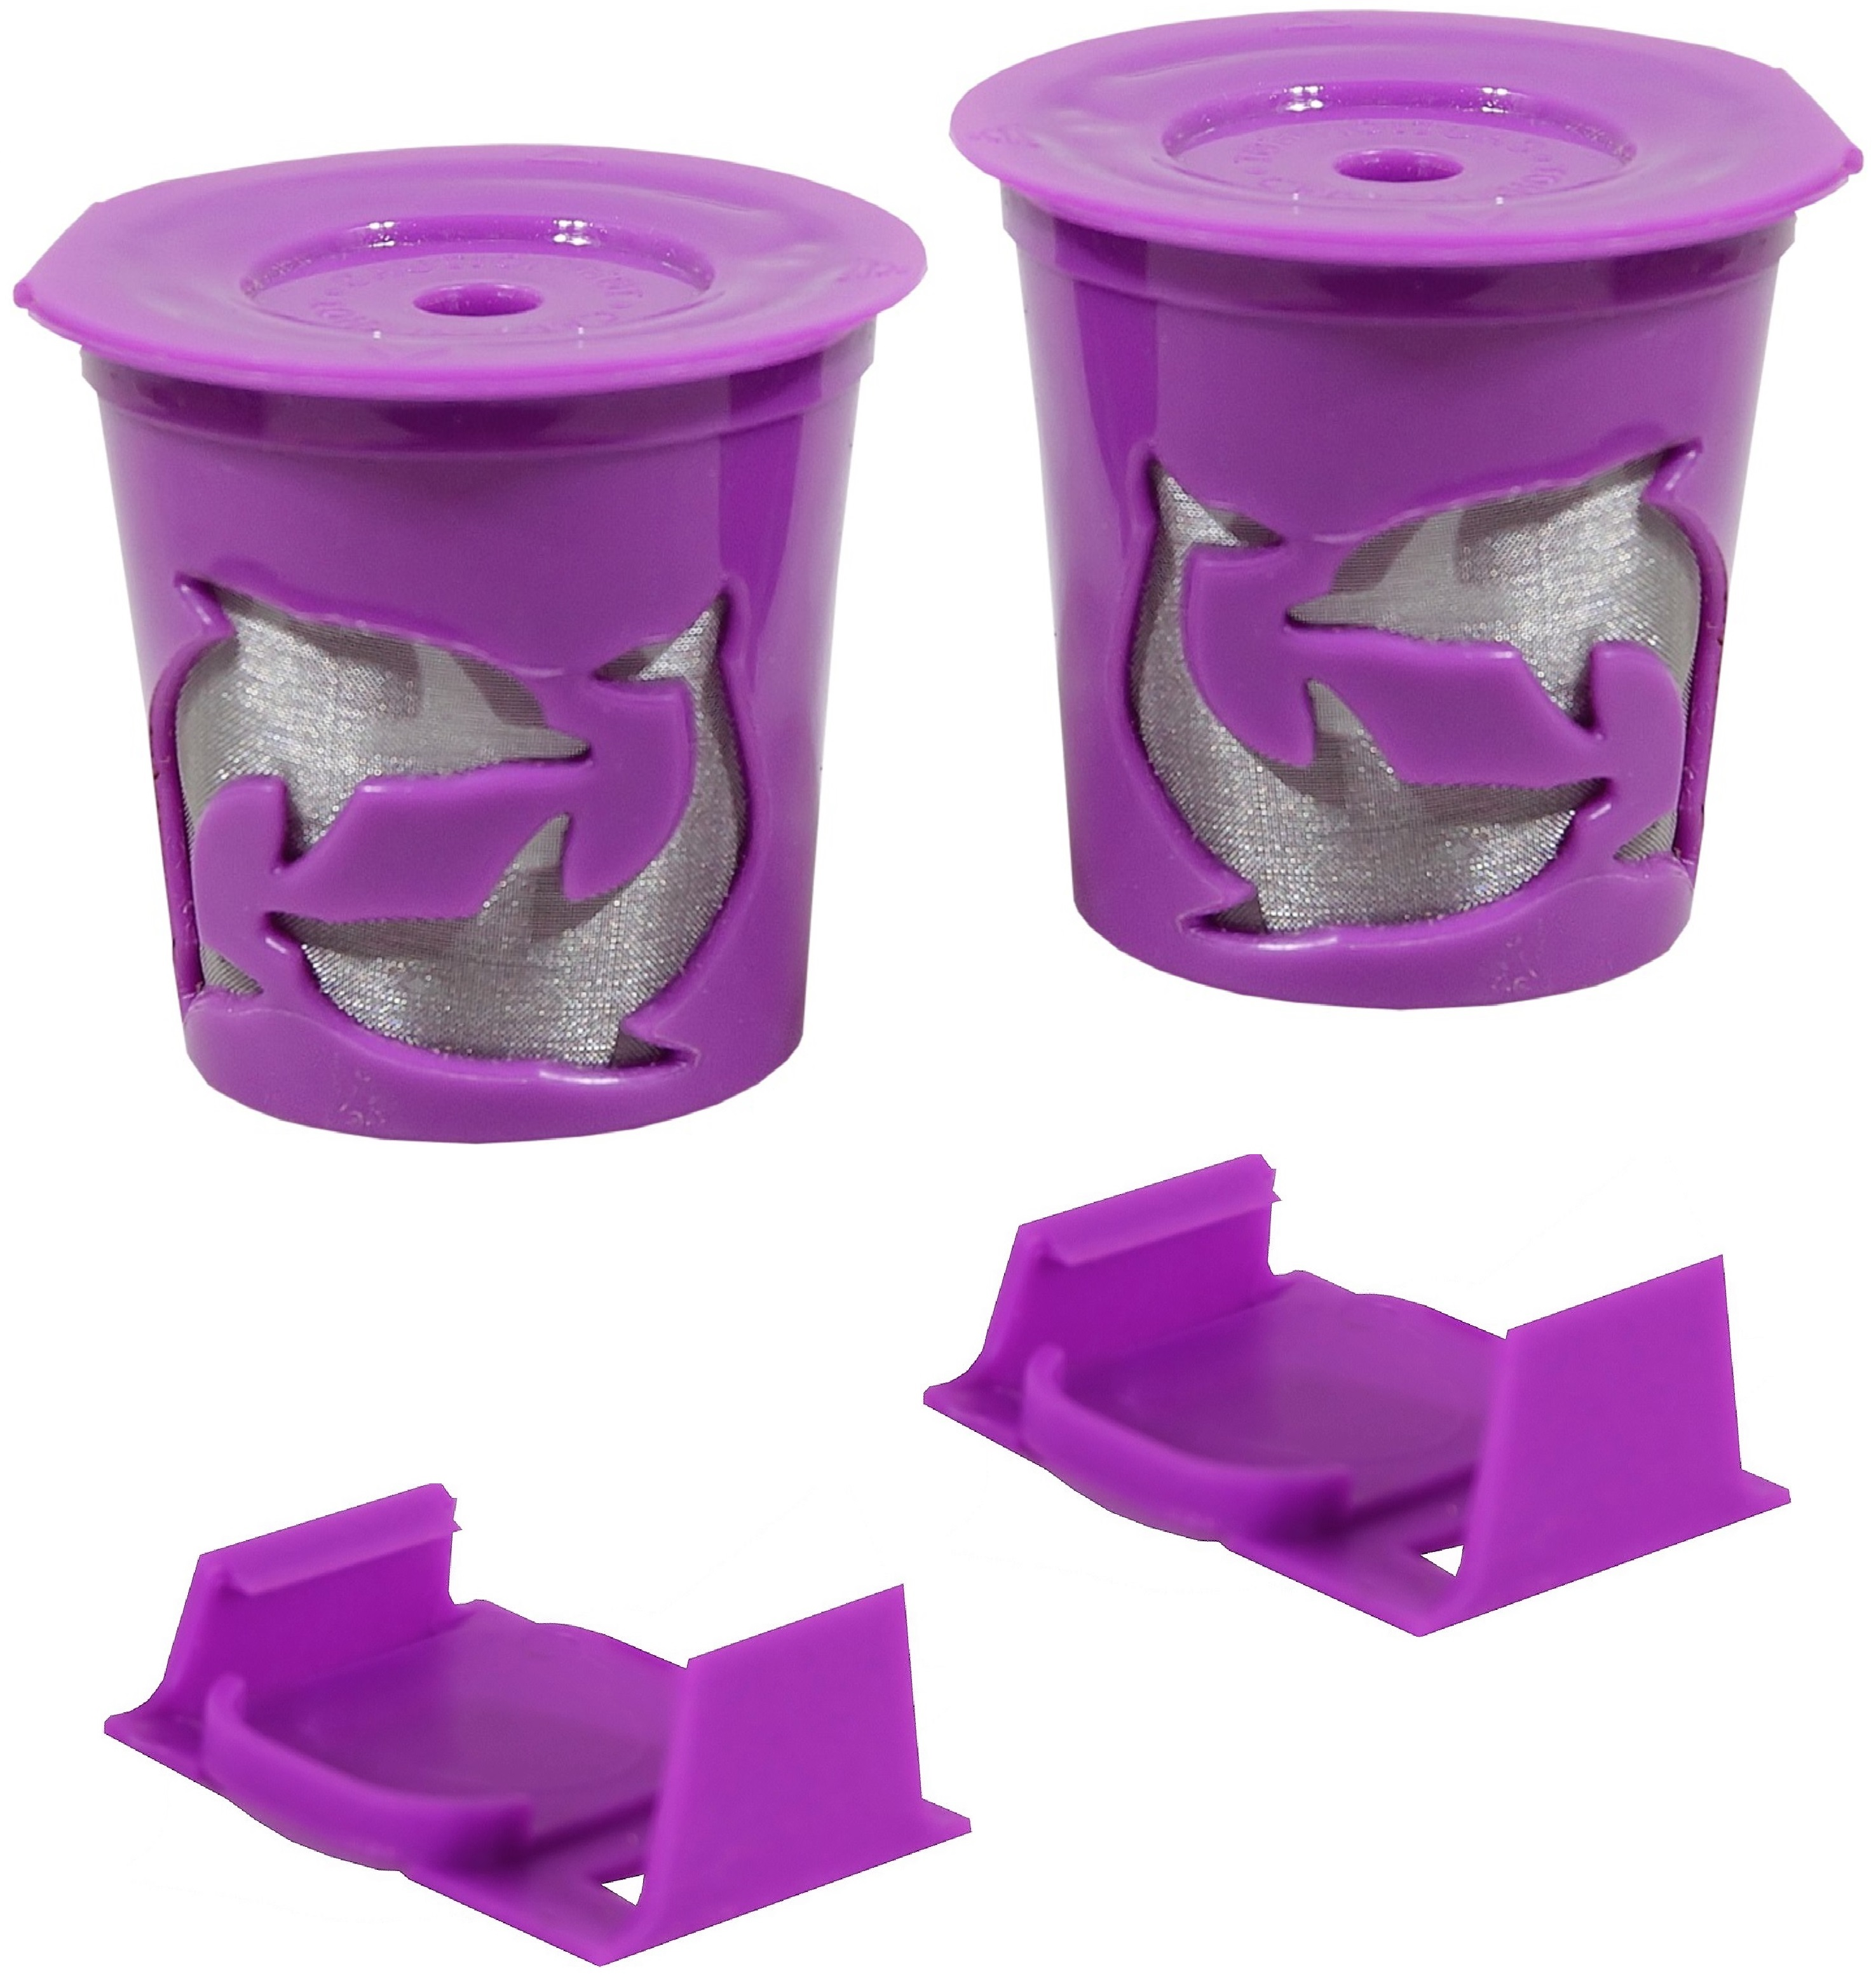 NEW Keurig 2.0 Coffee Filter Basket Reusable K-Cups Pack 2 Purple 2 Clever Clip